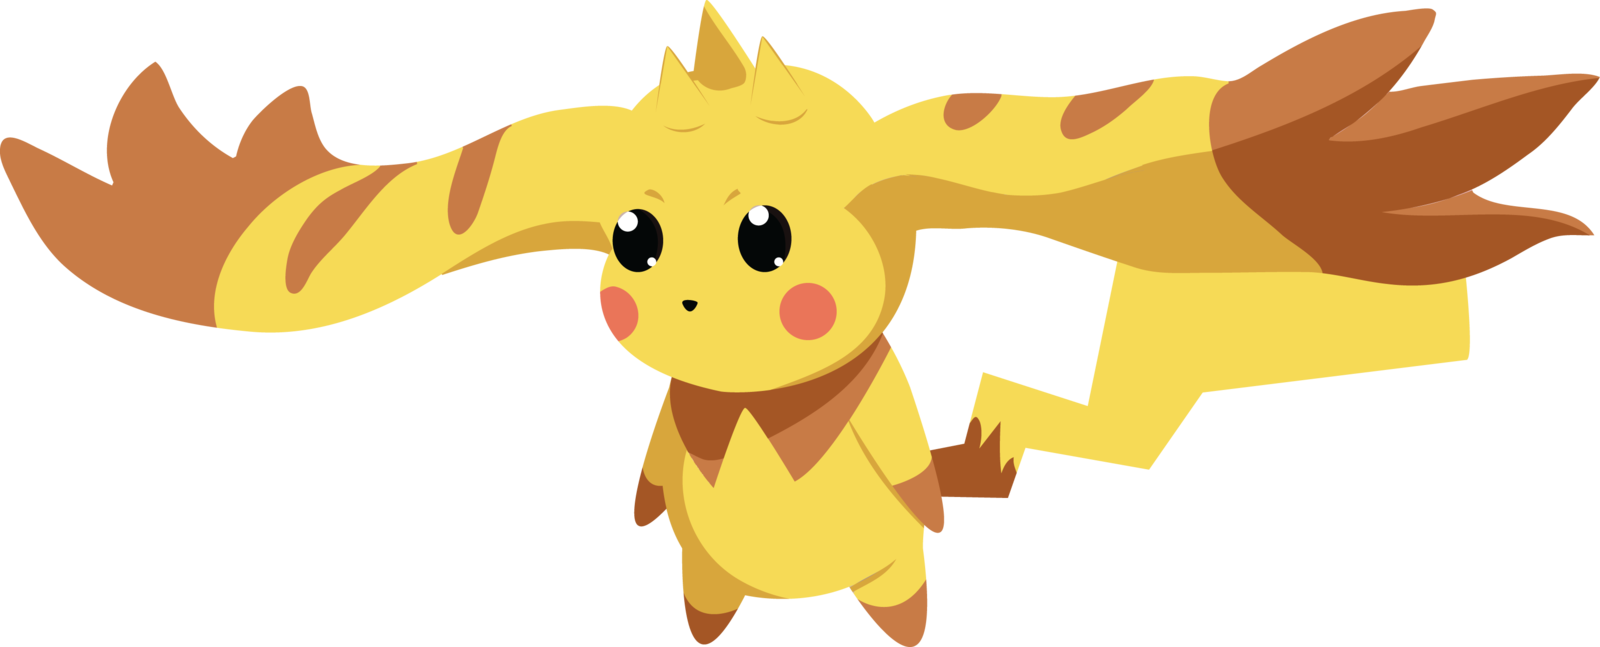 Pikachu clipart digimon Lopmon by Lopmon on DeviantArt